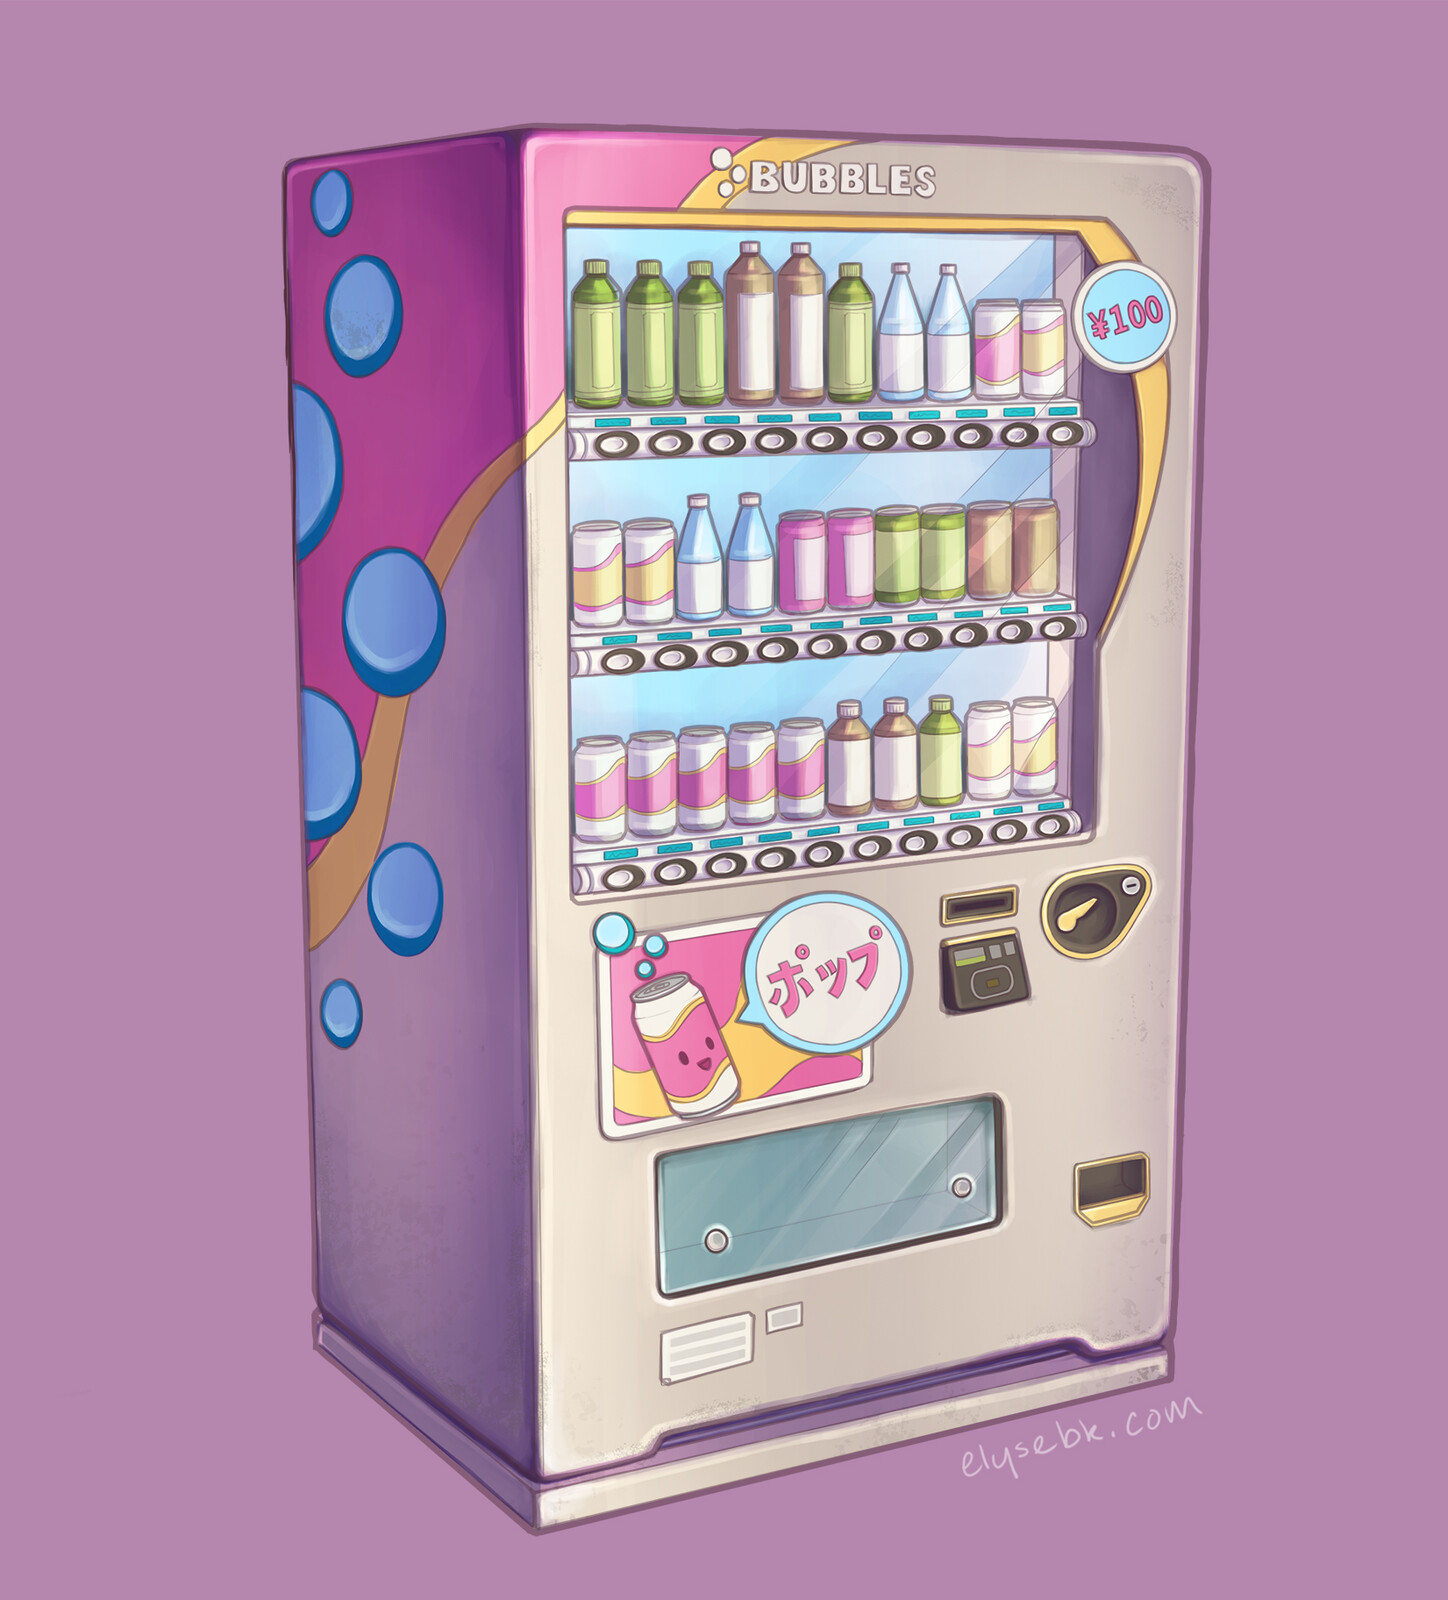 Bubbles drinks vending machine